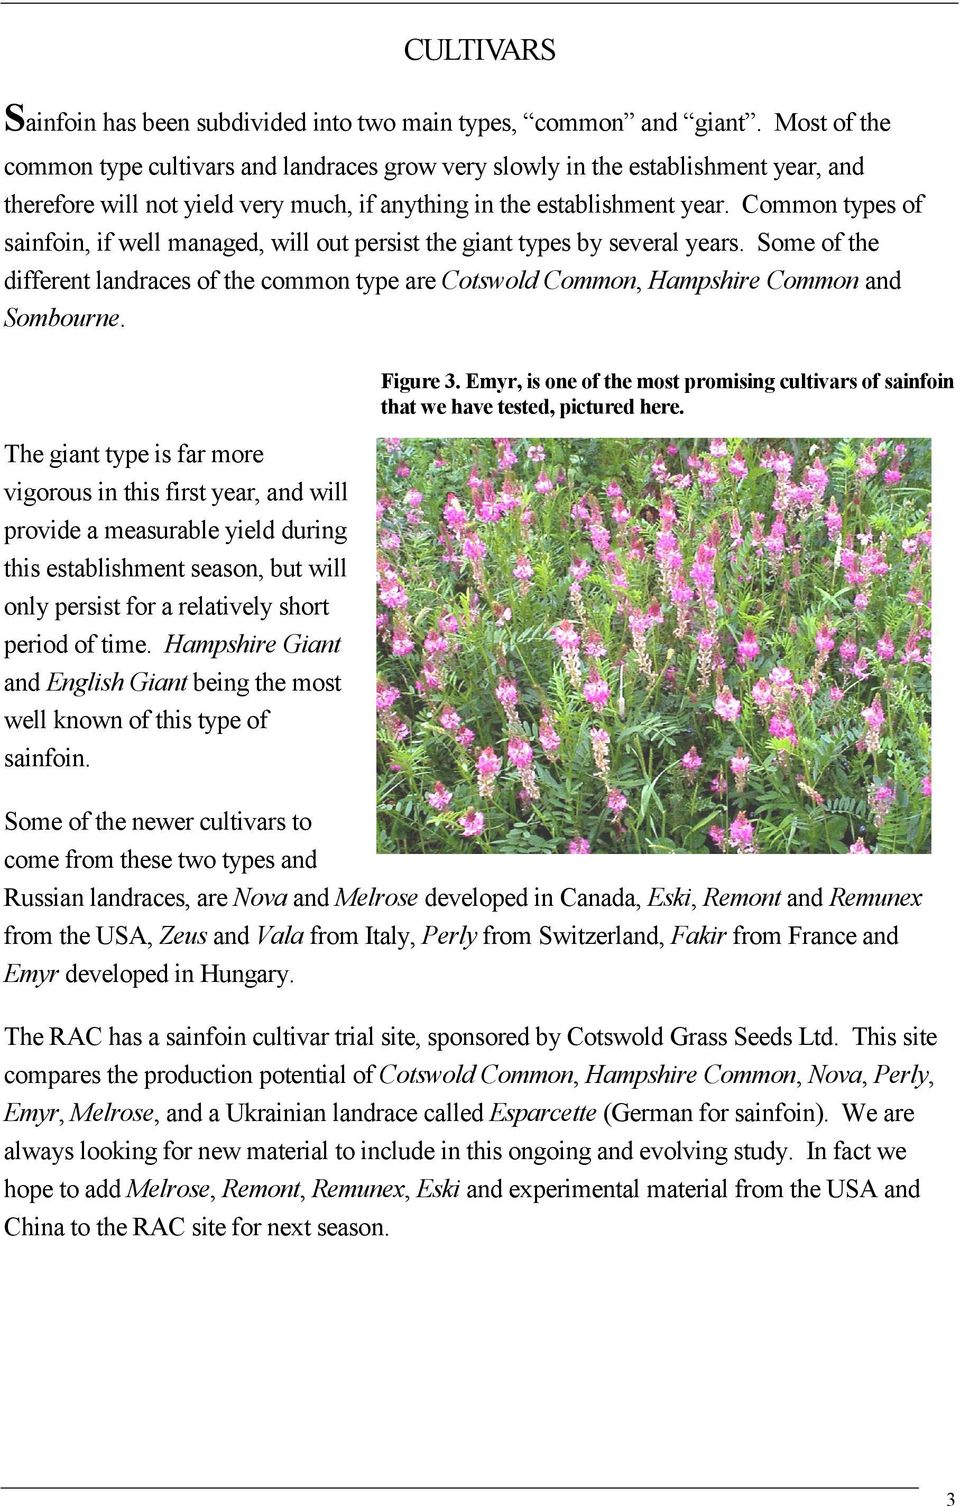 Sainfoin Worth Another Look Pdf